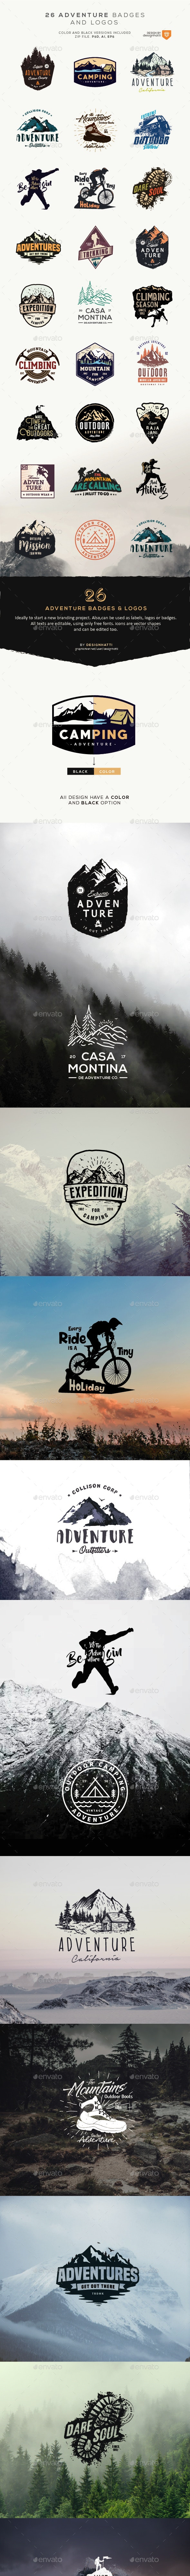 26 Adventure Badges and Logos - Badges & Stickers Web Elements